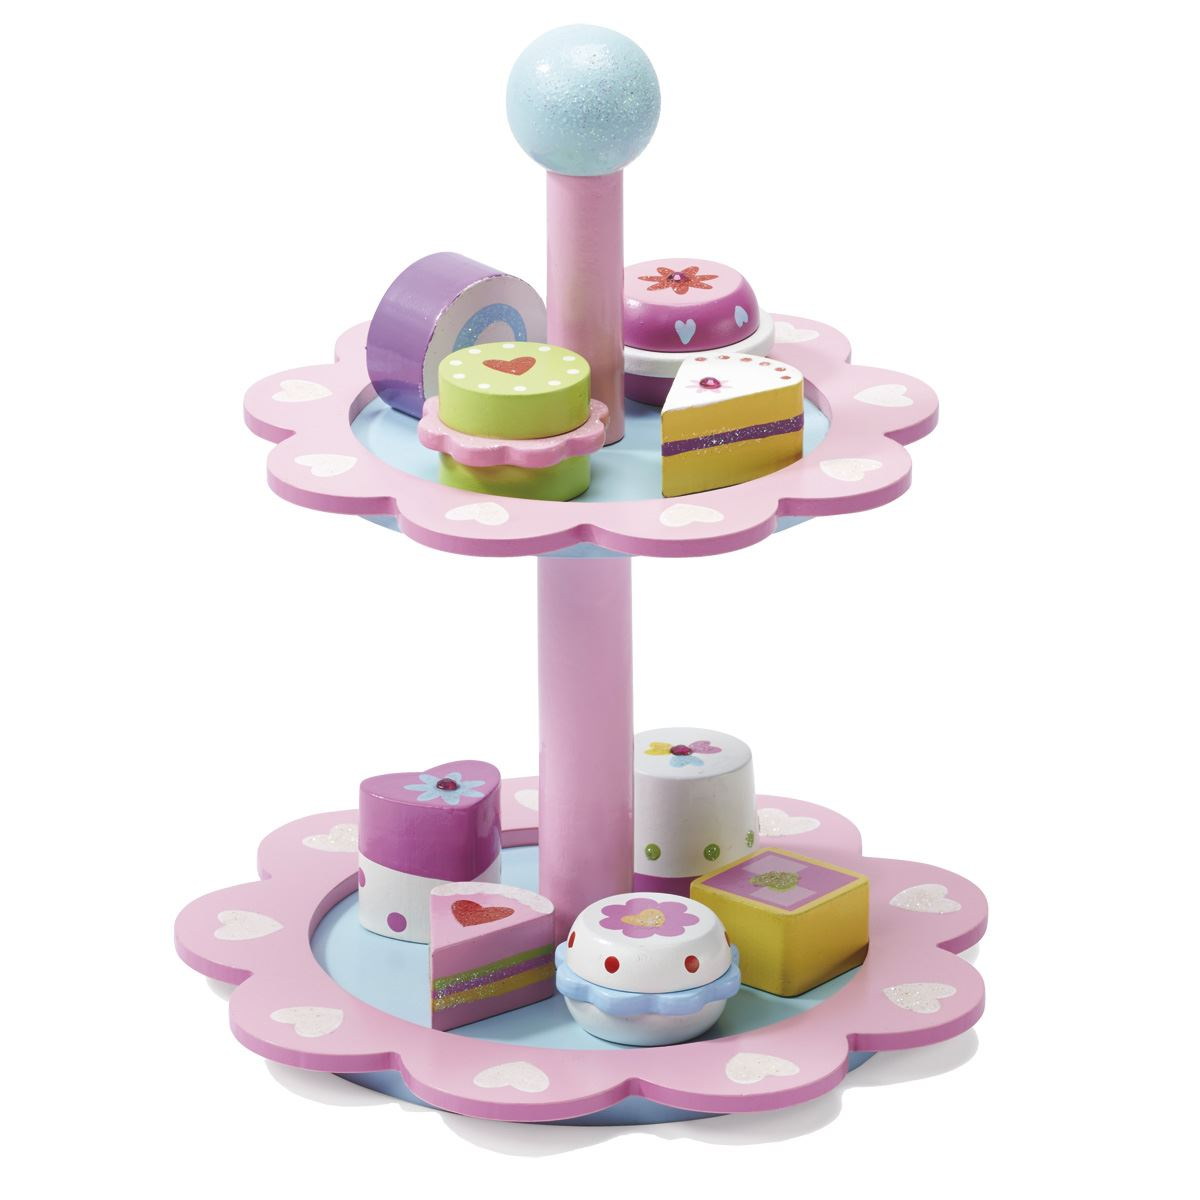 Fairy Wooden Cake Stand & Cakes| Fairy Wooden Cake Stand & Cakes: mulberrybush.co.uk/fairy-wooden-cake-stand-and-cakes